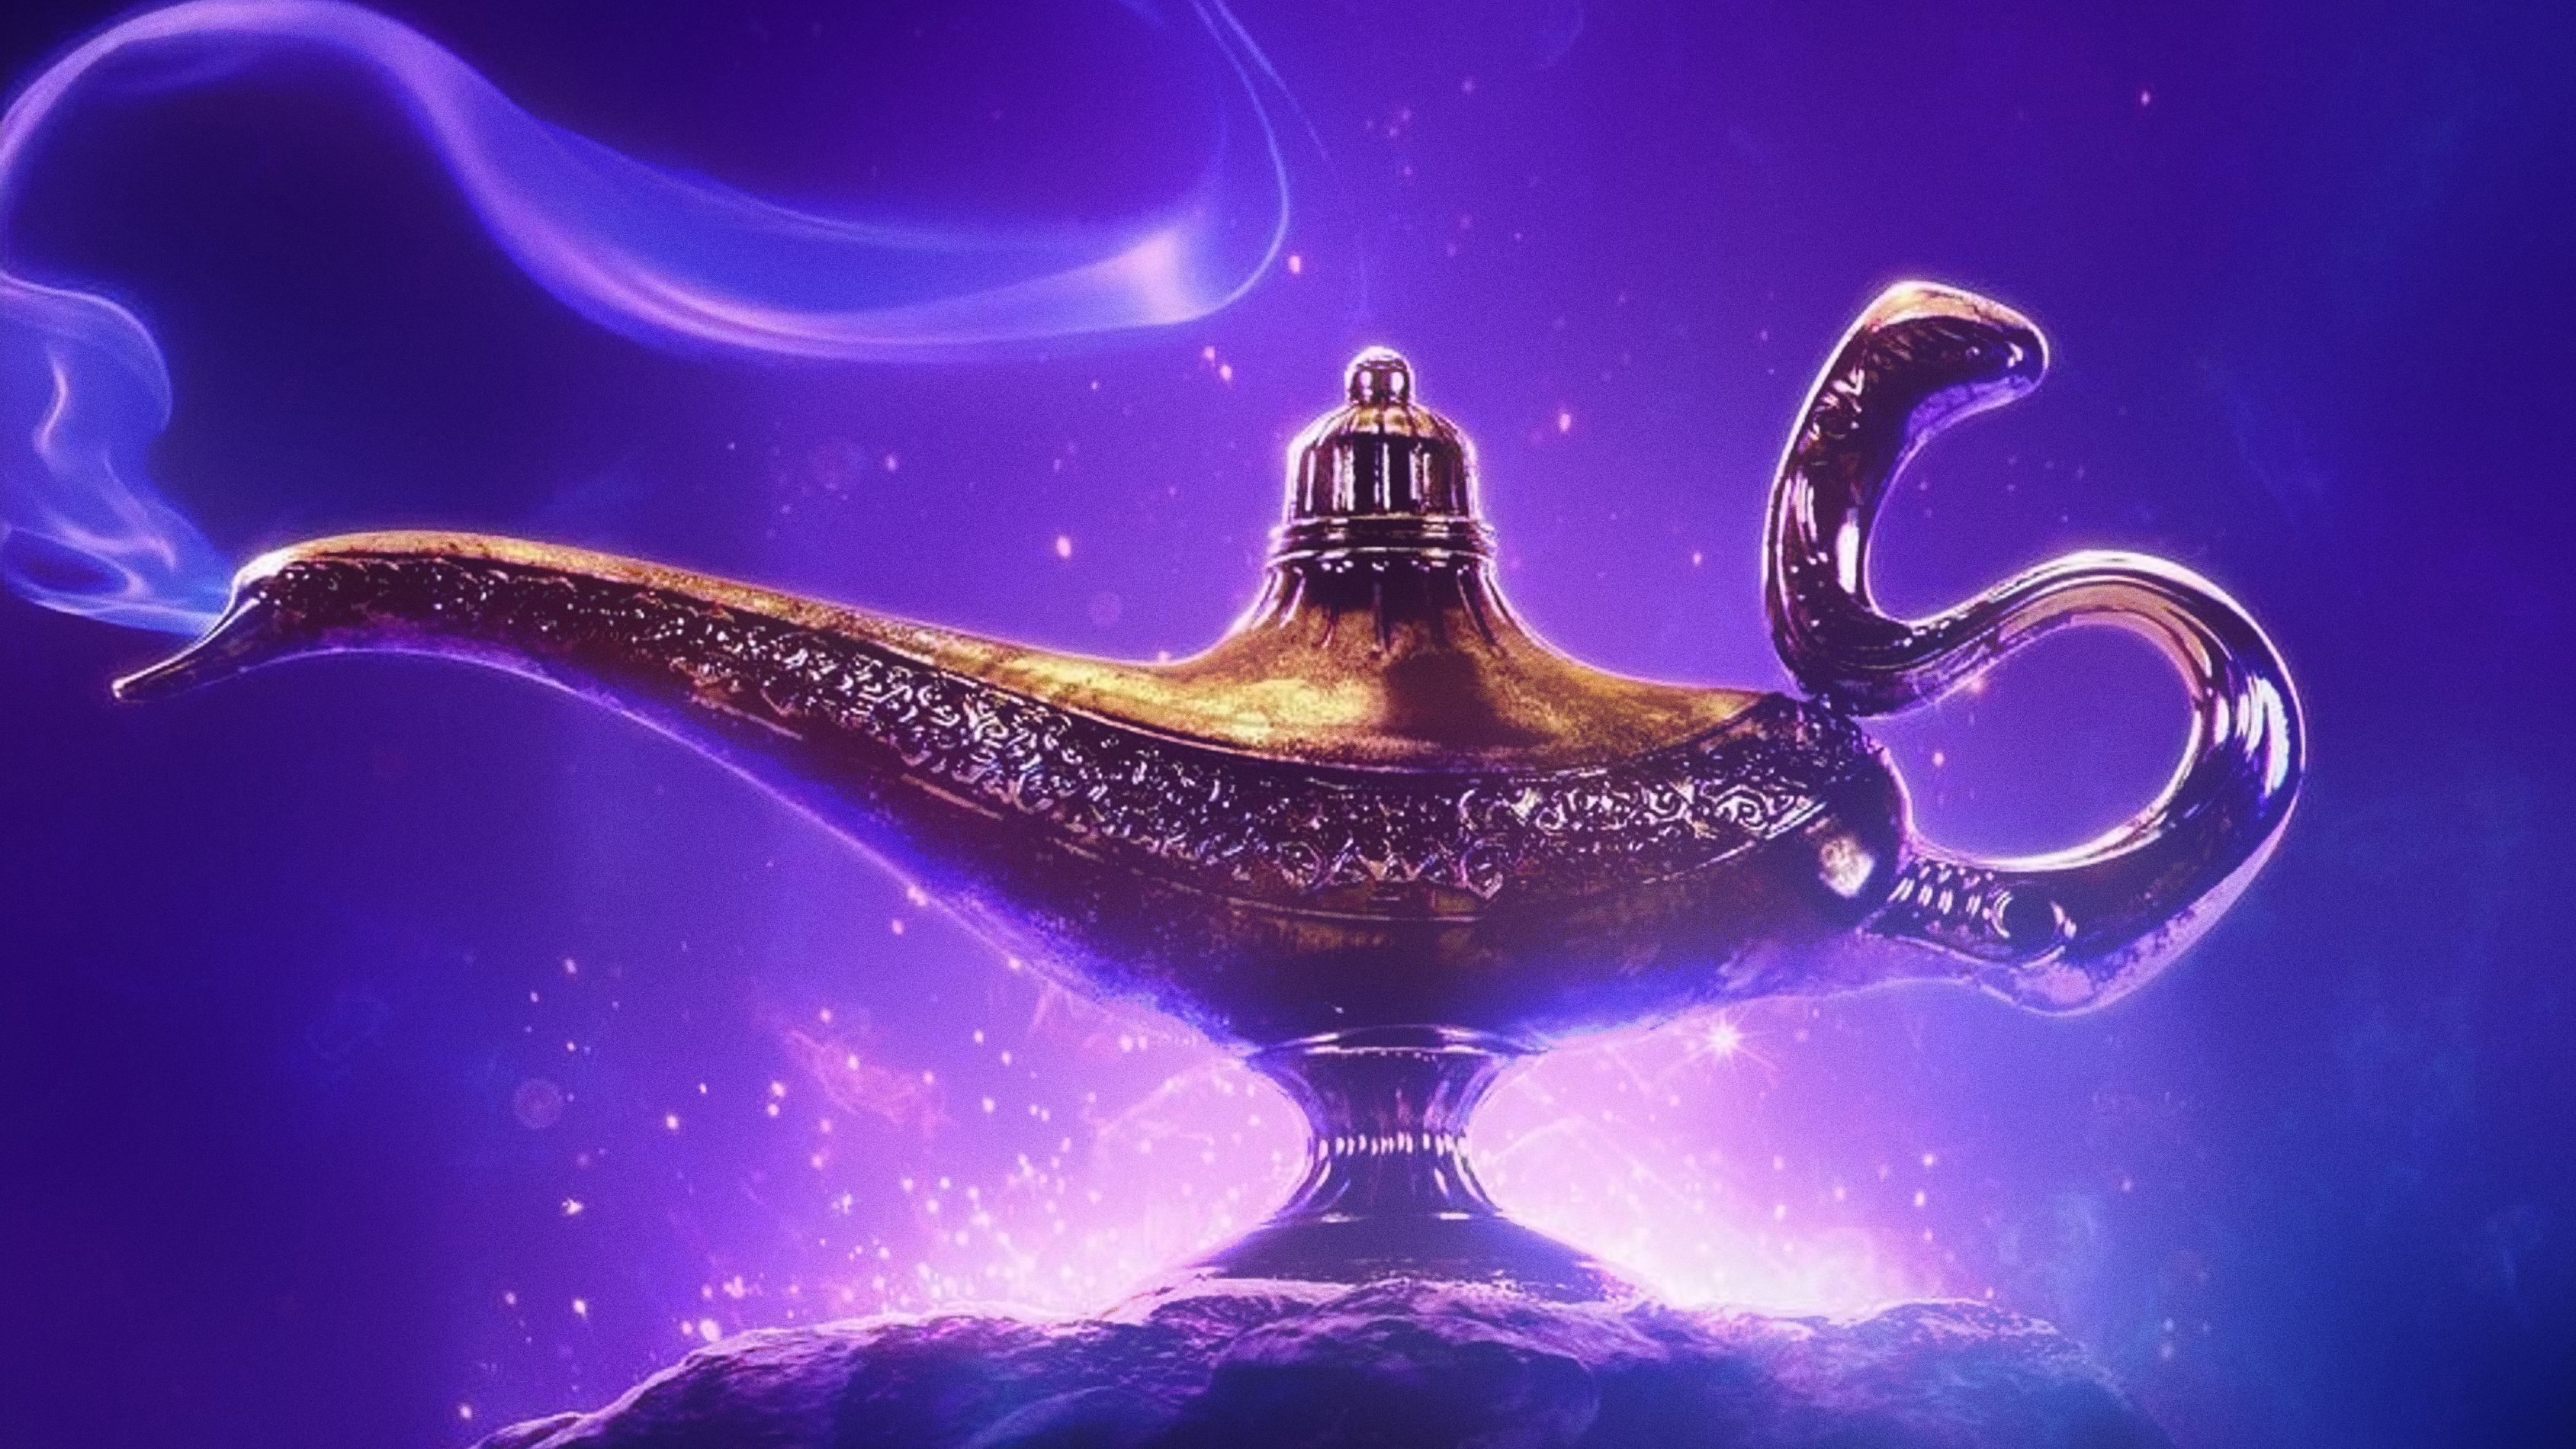 Aladdin Wallpapers Top Free Aladdin Backgrounds Wallpaperaccess